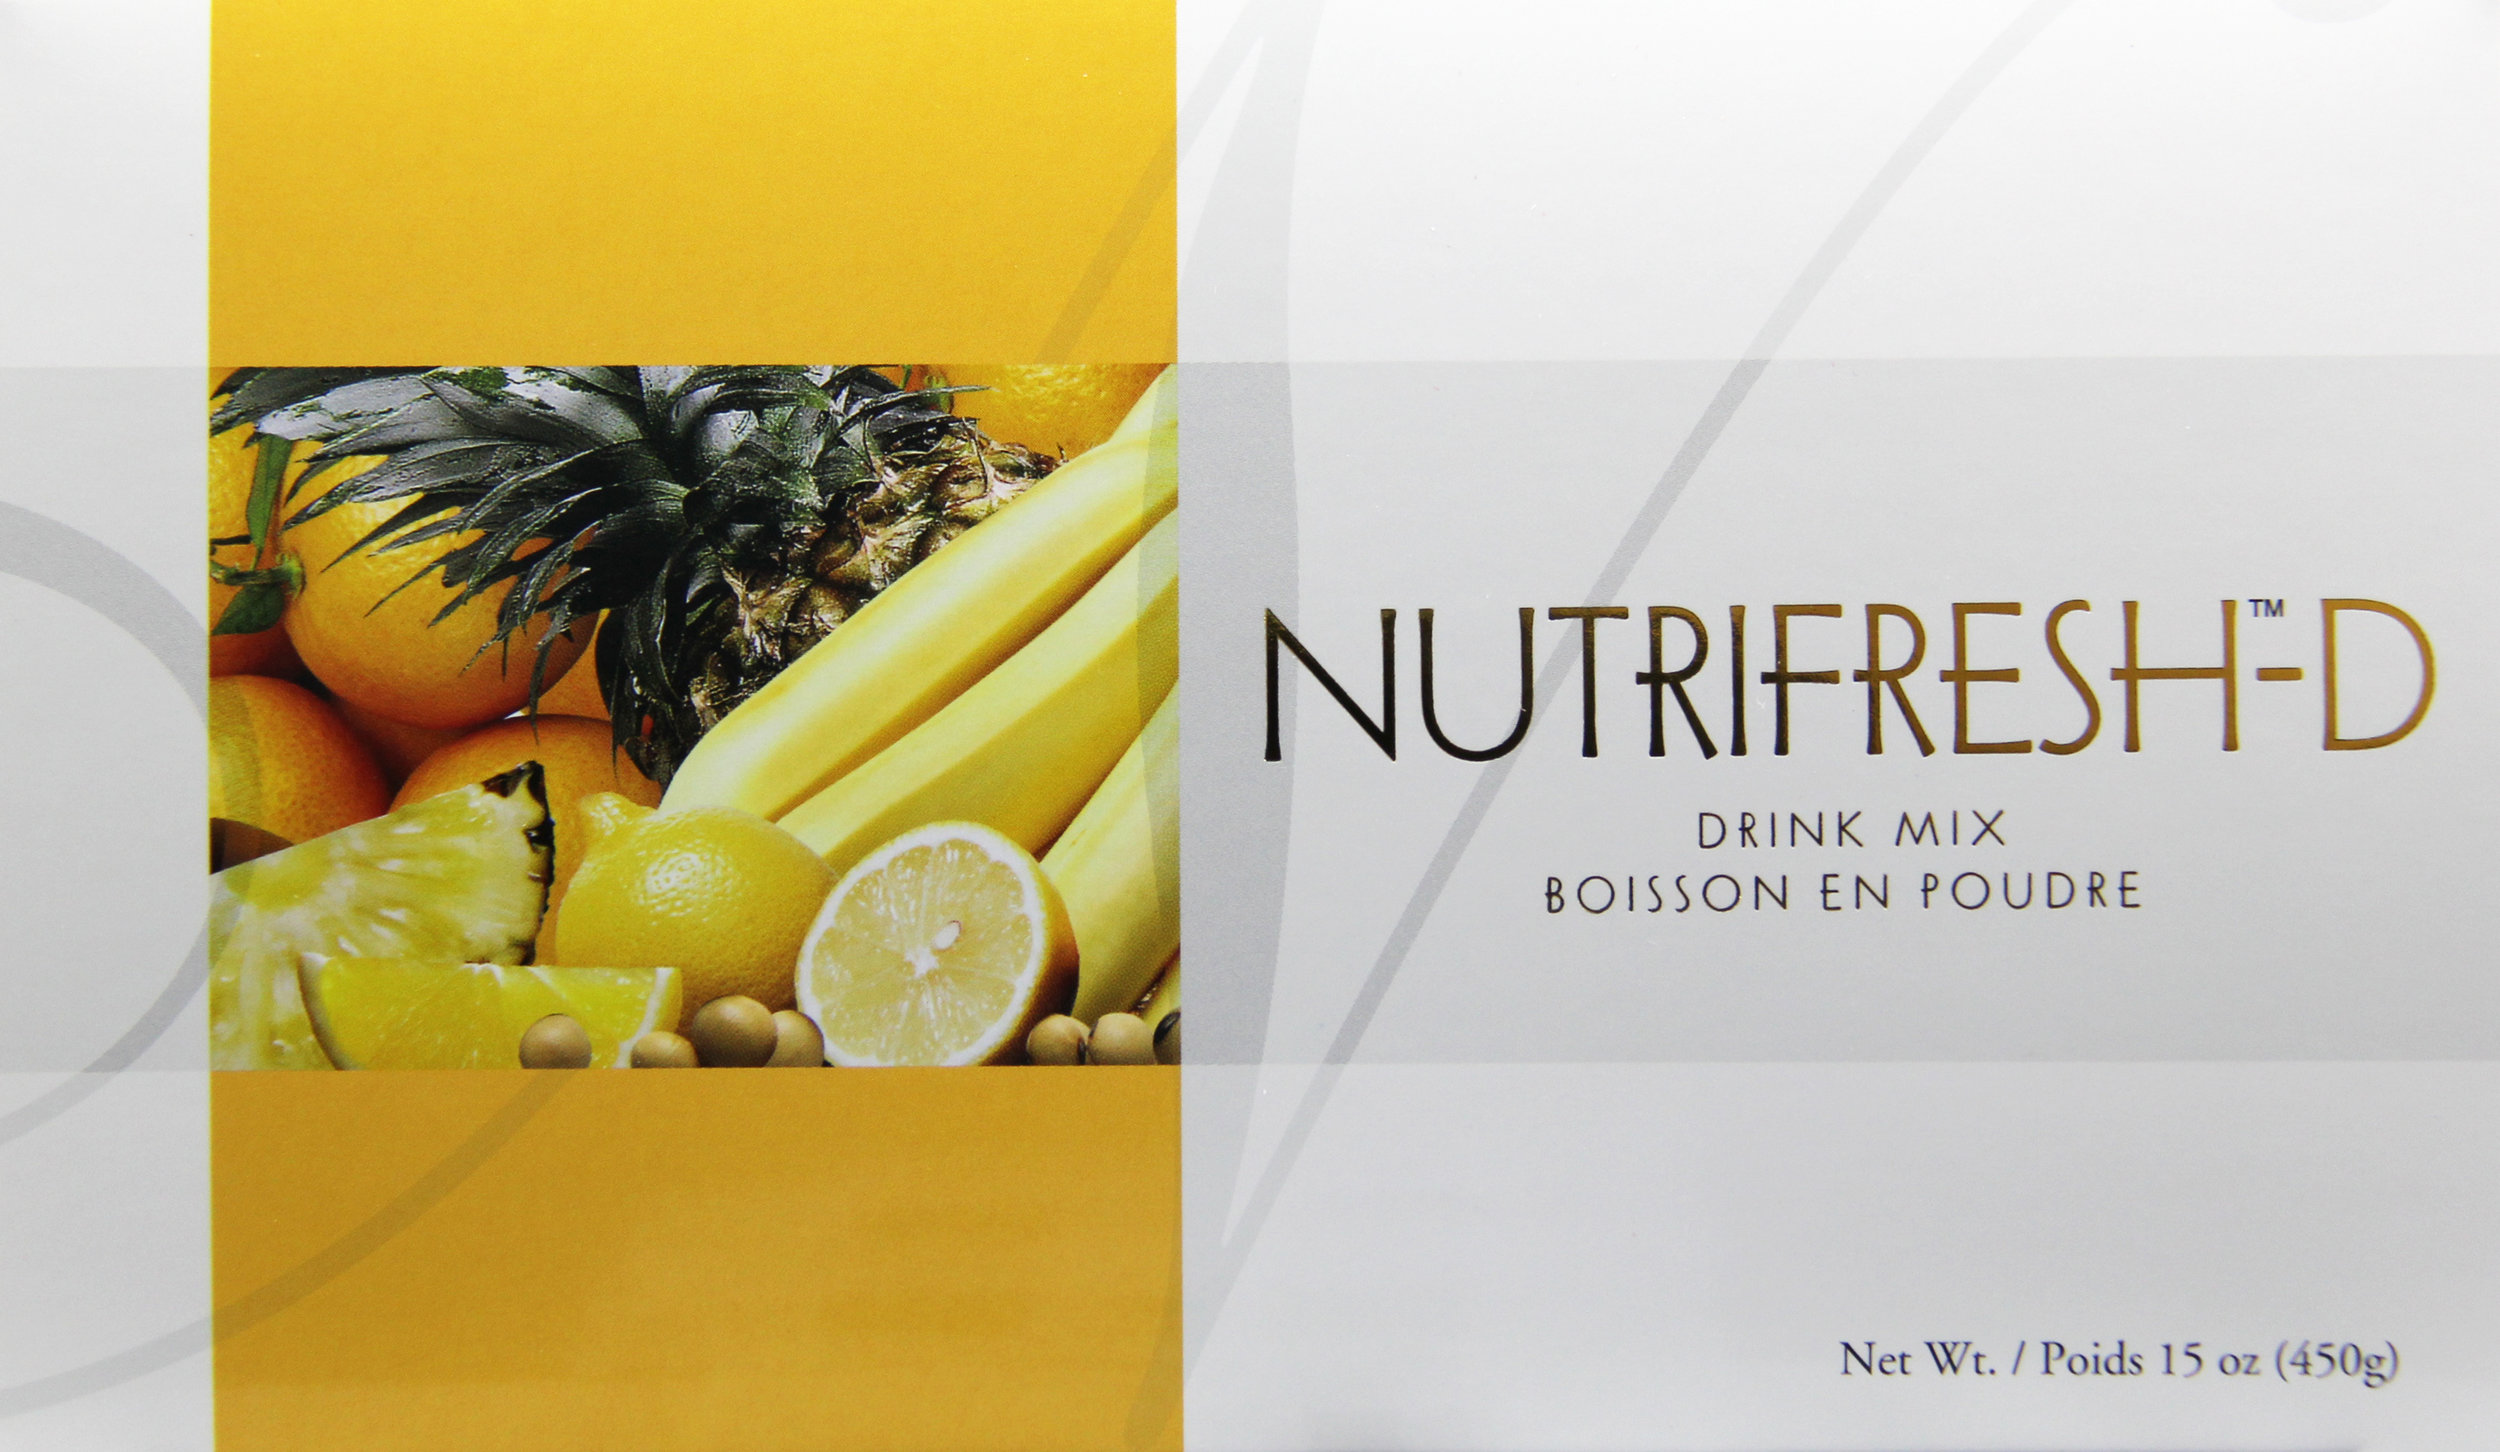 nutrifresh-d - A botanical powdered beverage. Vegan, less sugar, low-fat, cholesterol-free. Very low sodium. Contains natural soy and fruit. No artificial colors or preservatives. Made with non-GMO Soy.Featured Ingredients: Non-GMO Soy, Banana, Orange